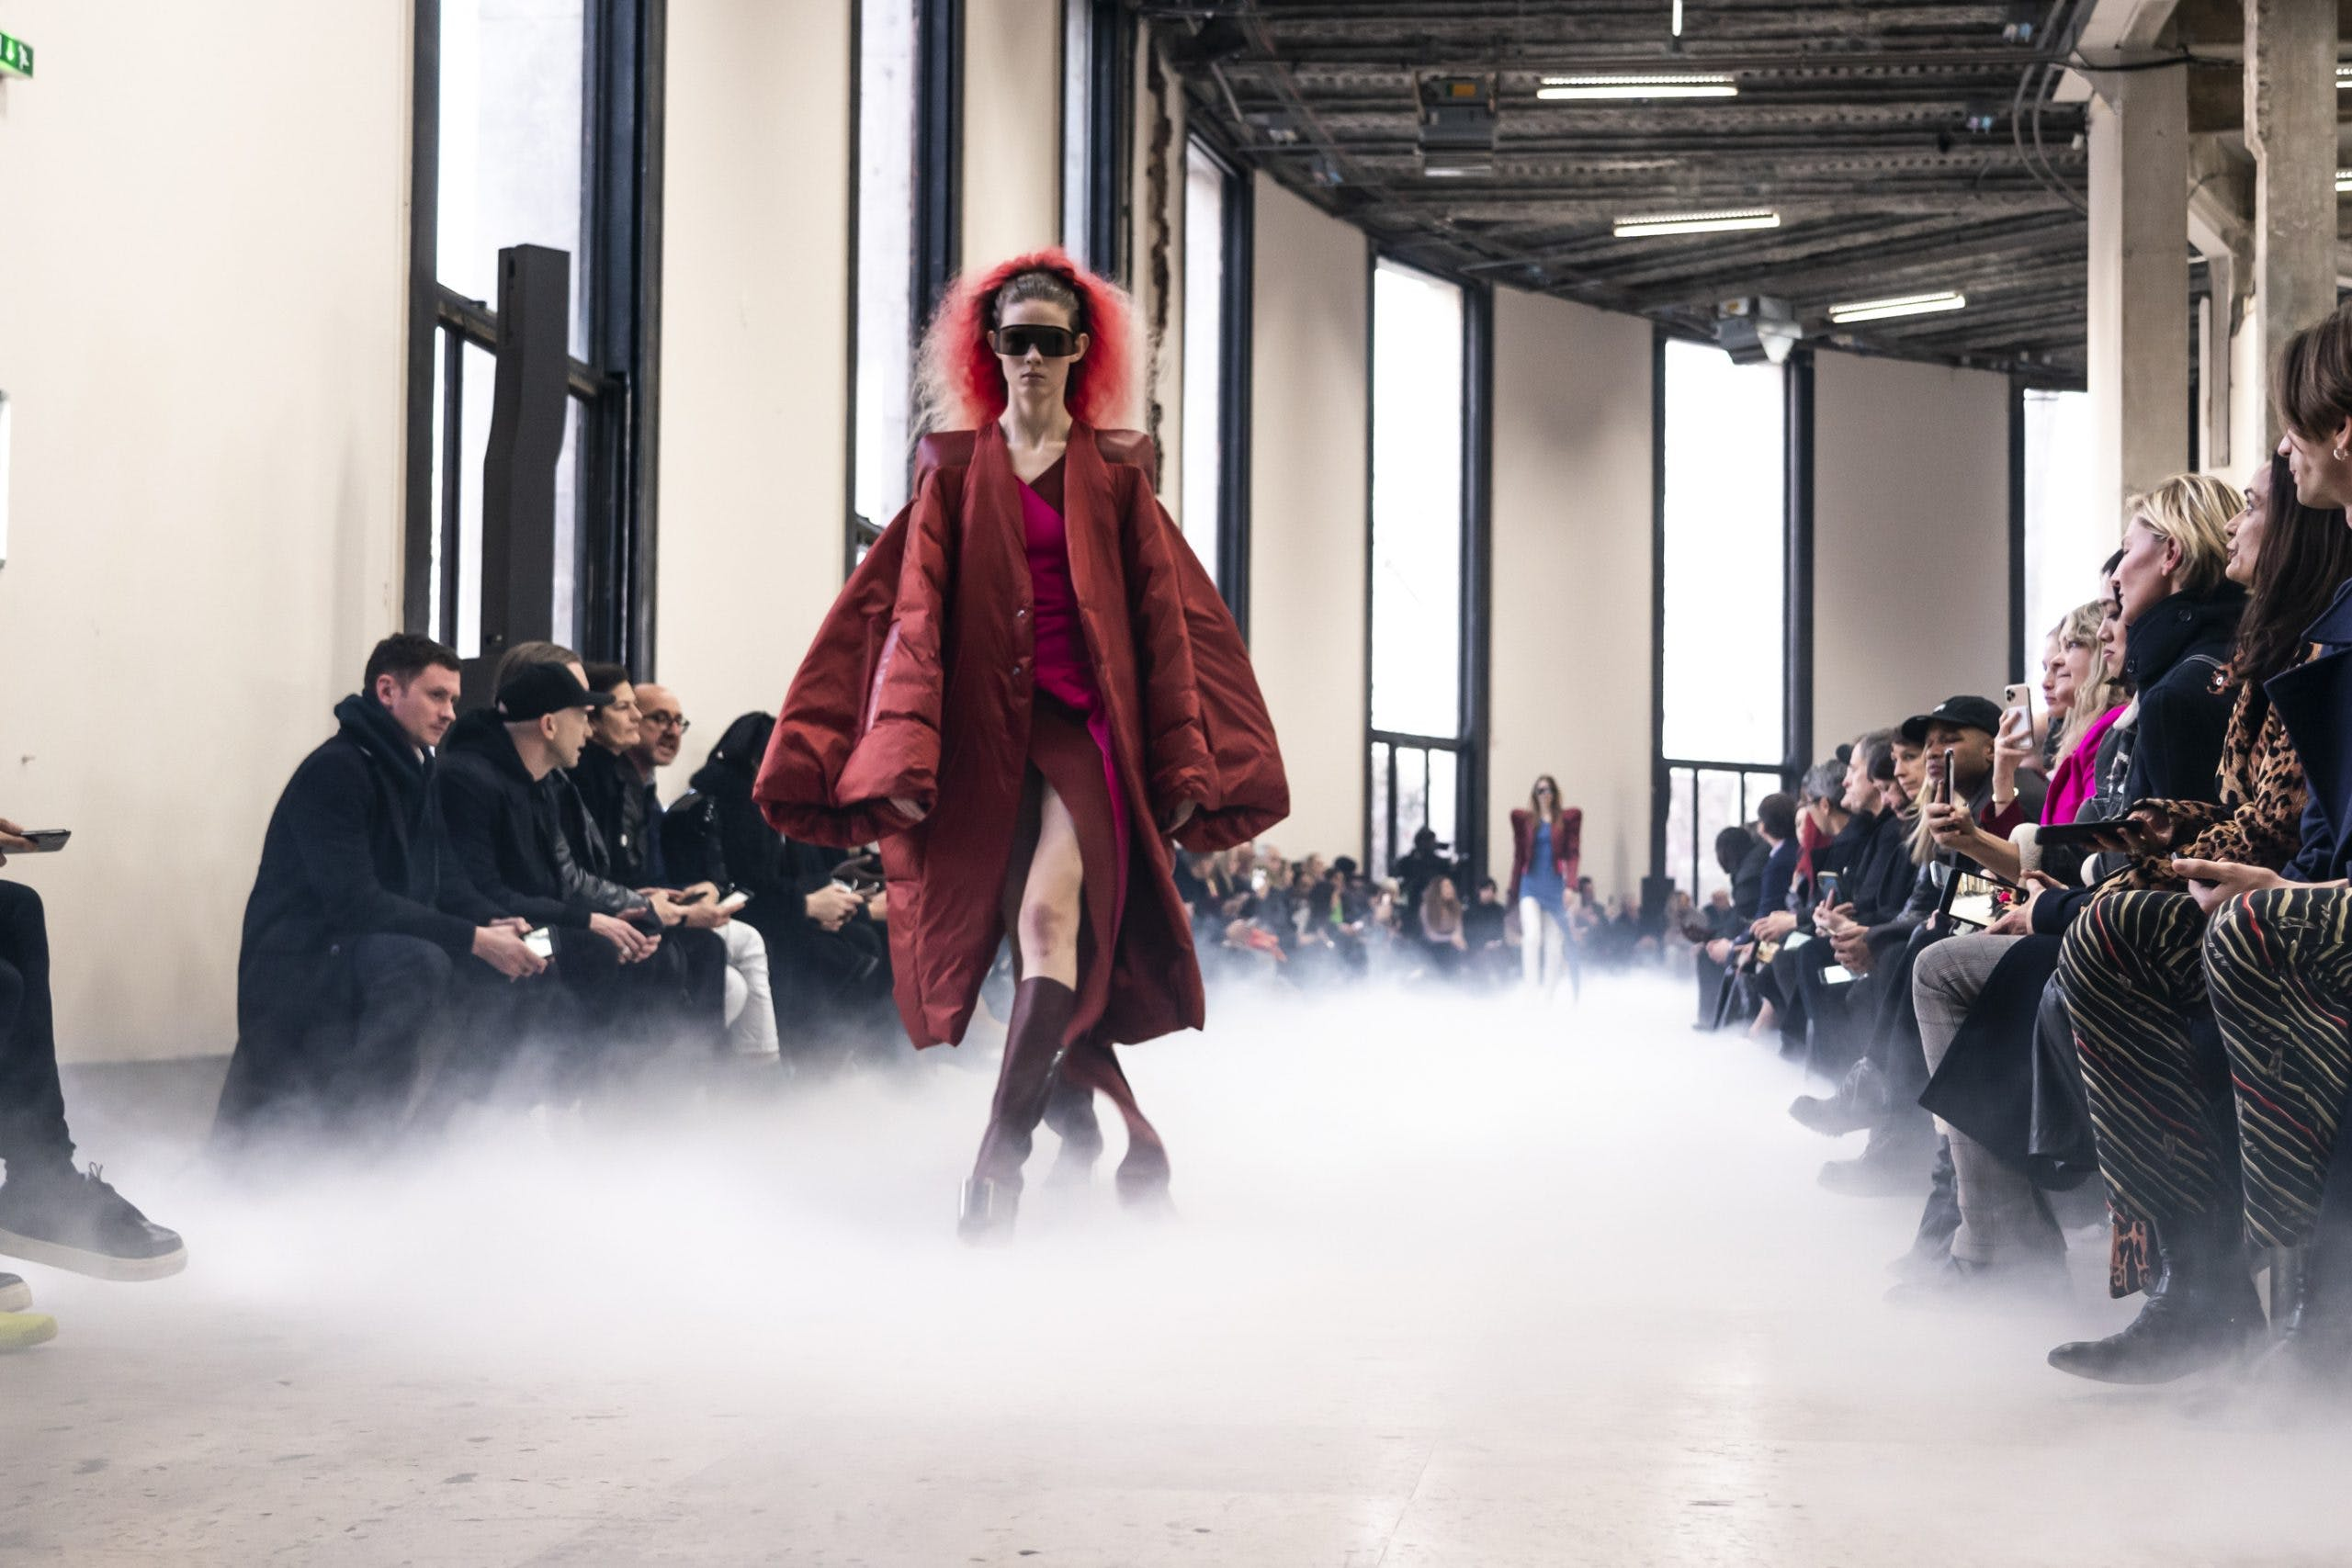 Rick Owens Runway Shield Sunglasses in Black Capped Leather Shoulder Exaggerated Sleeve Coat in Red Slit Two Tone Dress in Red High Kiss Grill Boots in Red Womens FW20 Performa